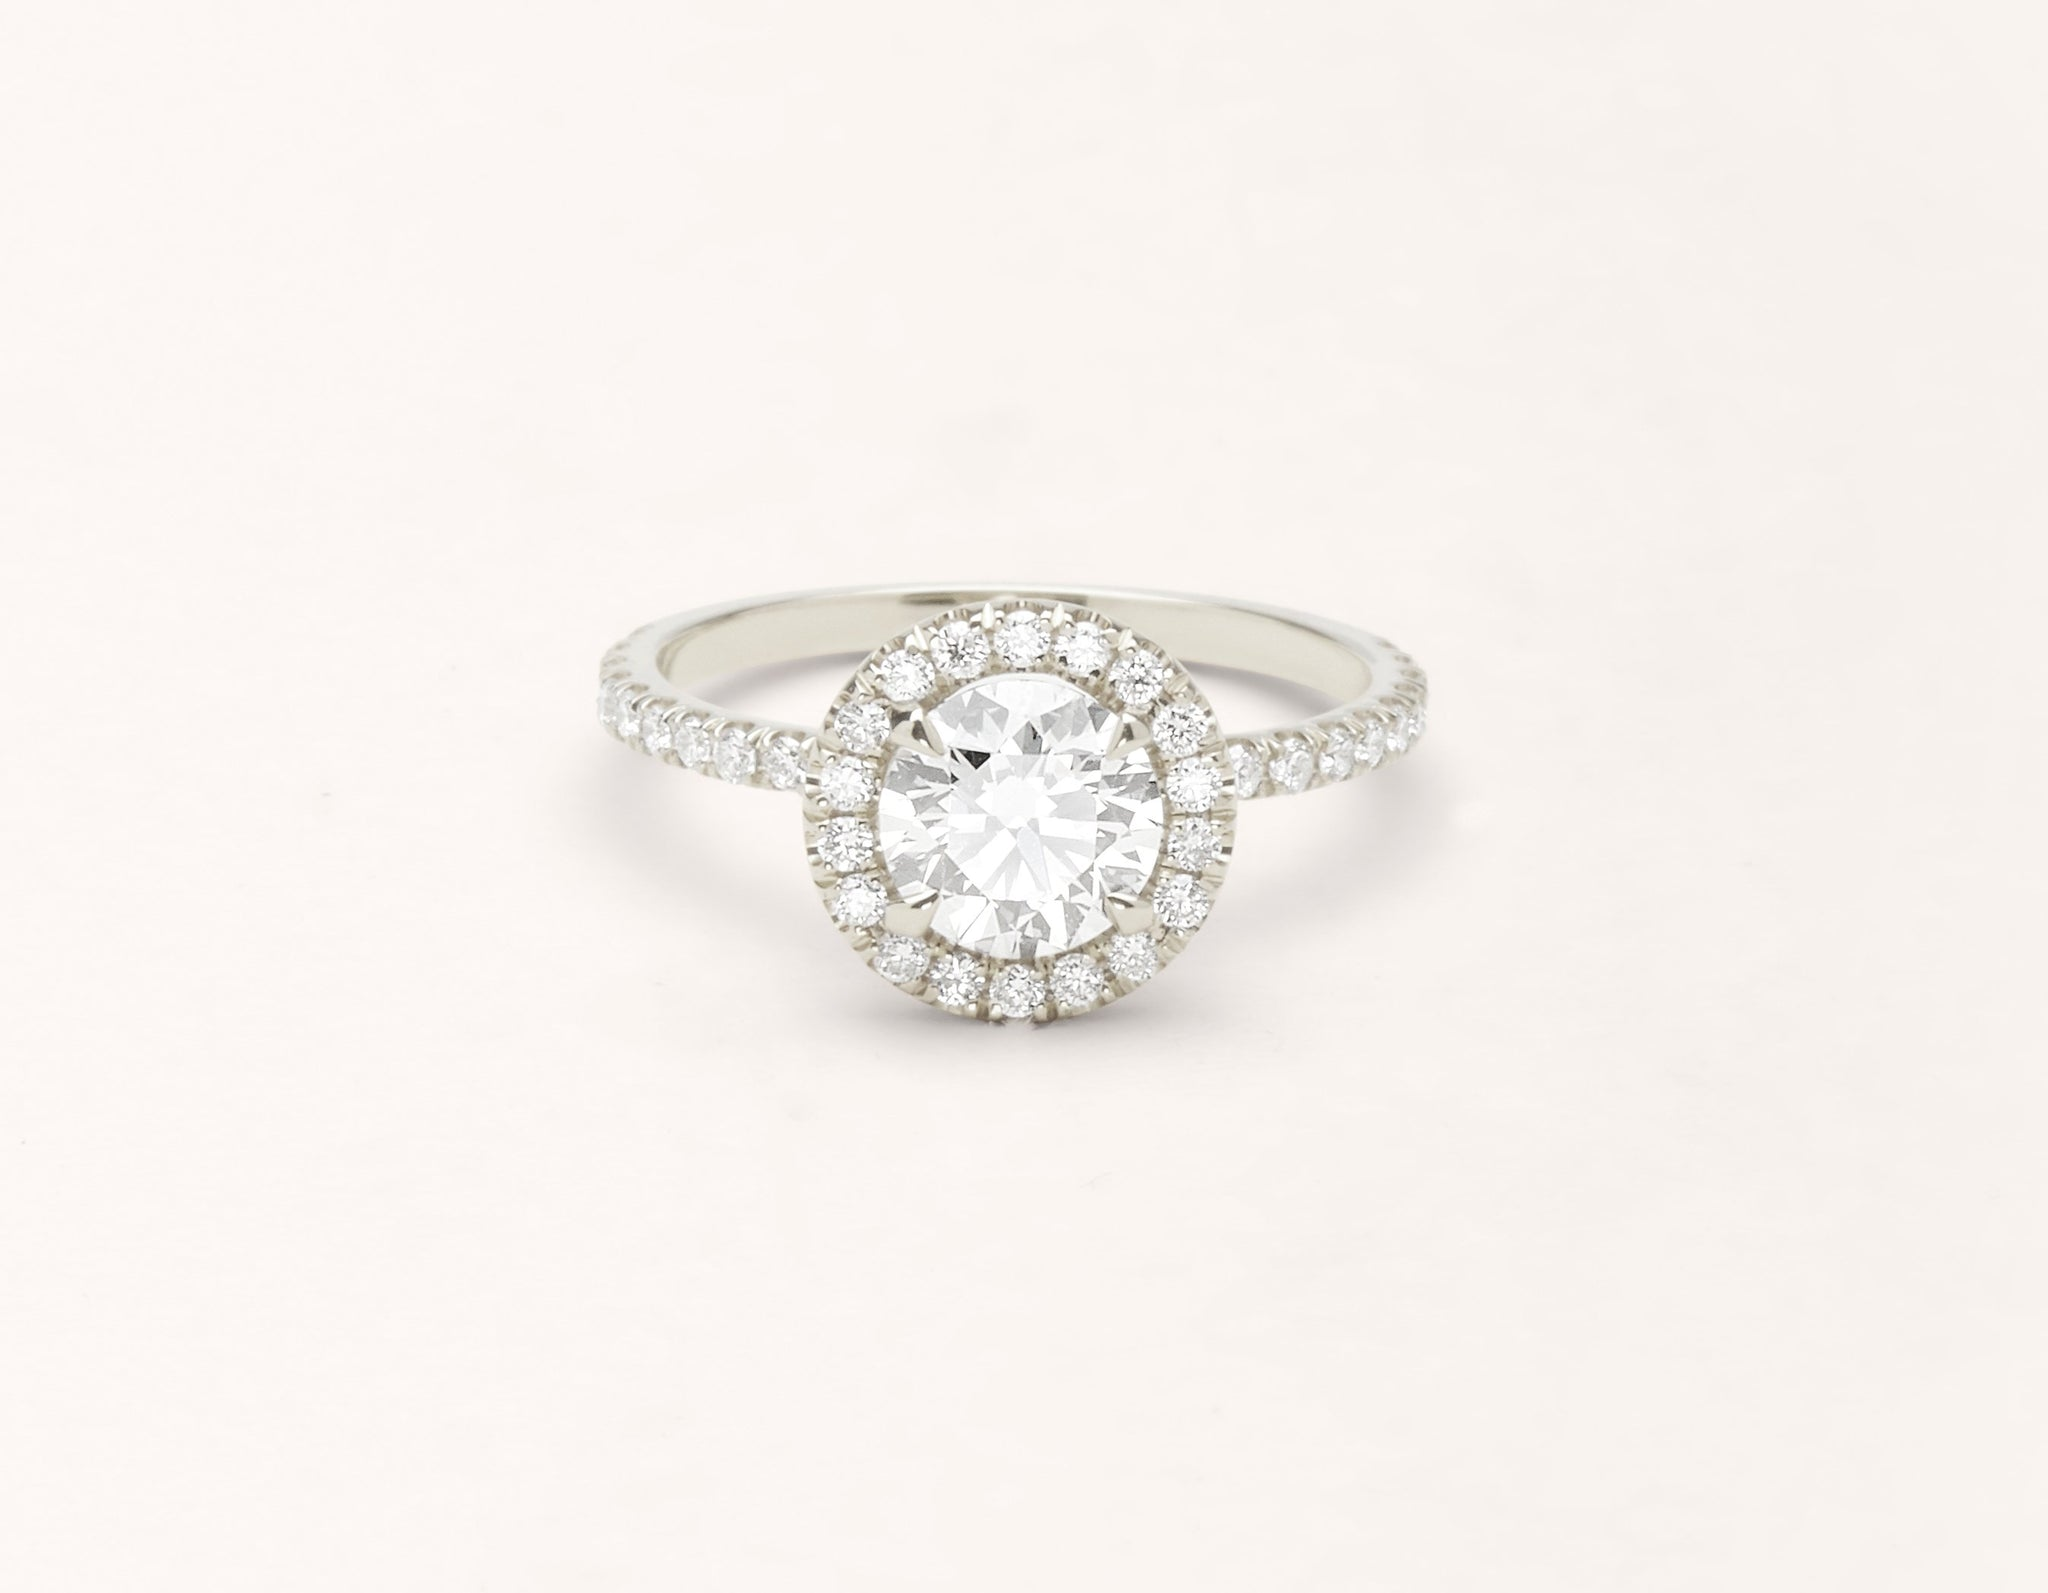 Minimalist 18k solid white gold The Halo pave engagement ring 1 ct round diamond Vrai and Oro